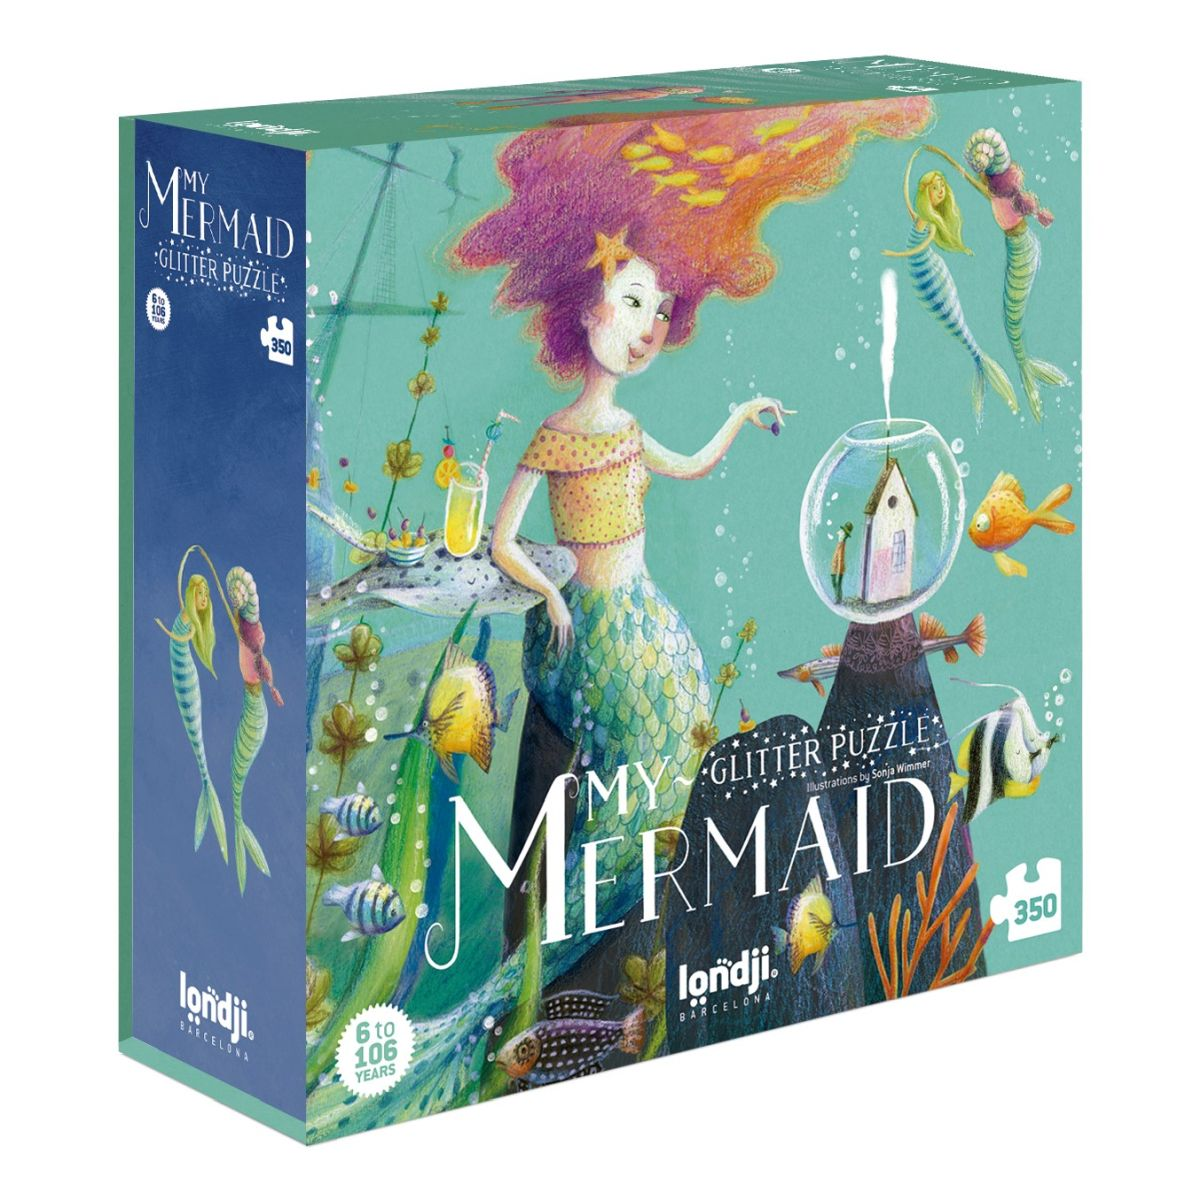 A blue puzzle box with a mermaid on it and other sea-creatures and mermaids on a white background.